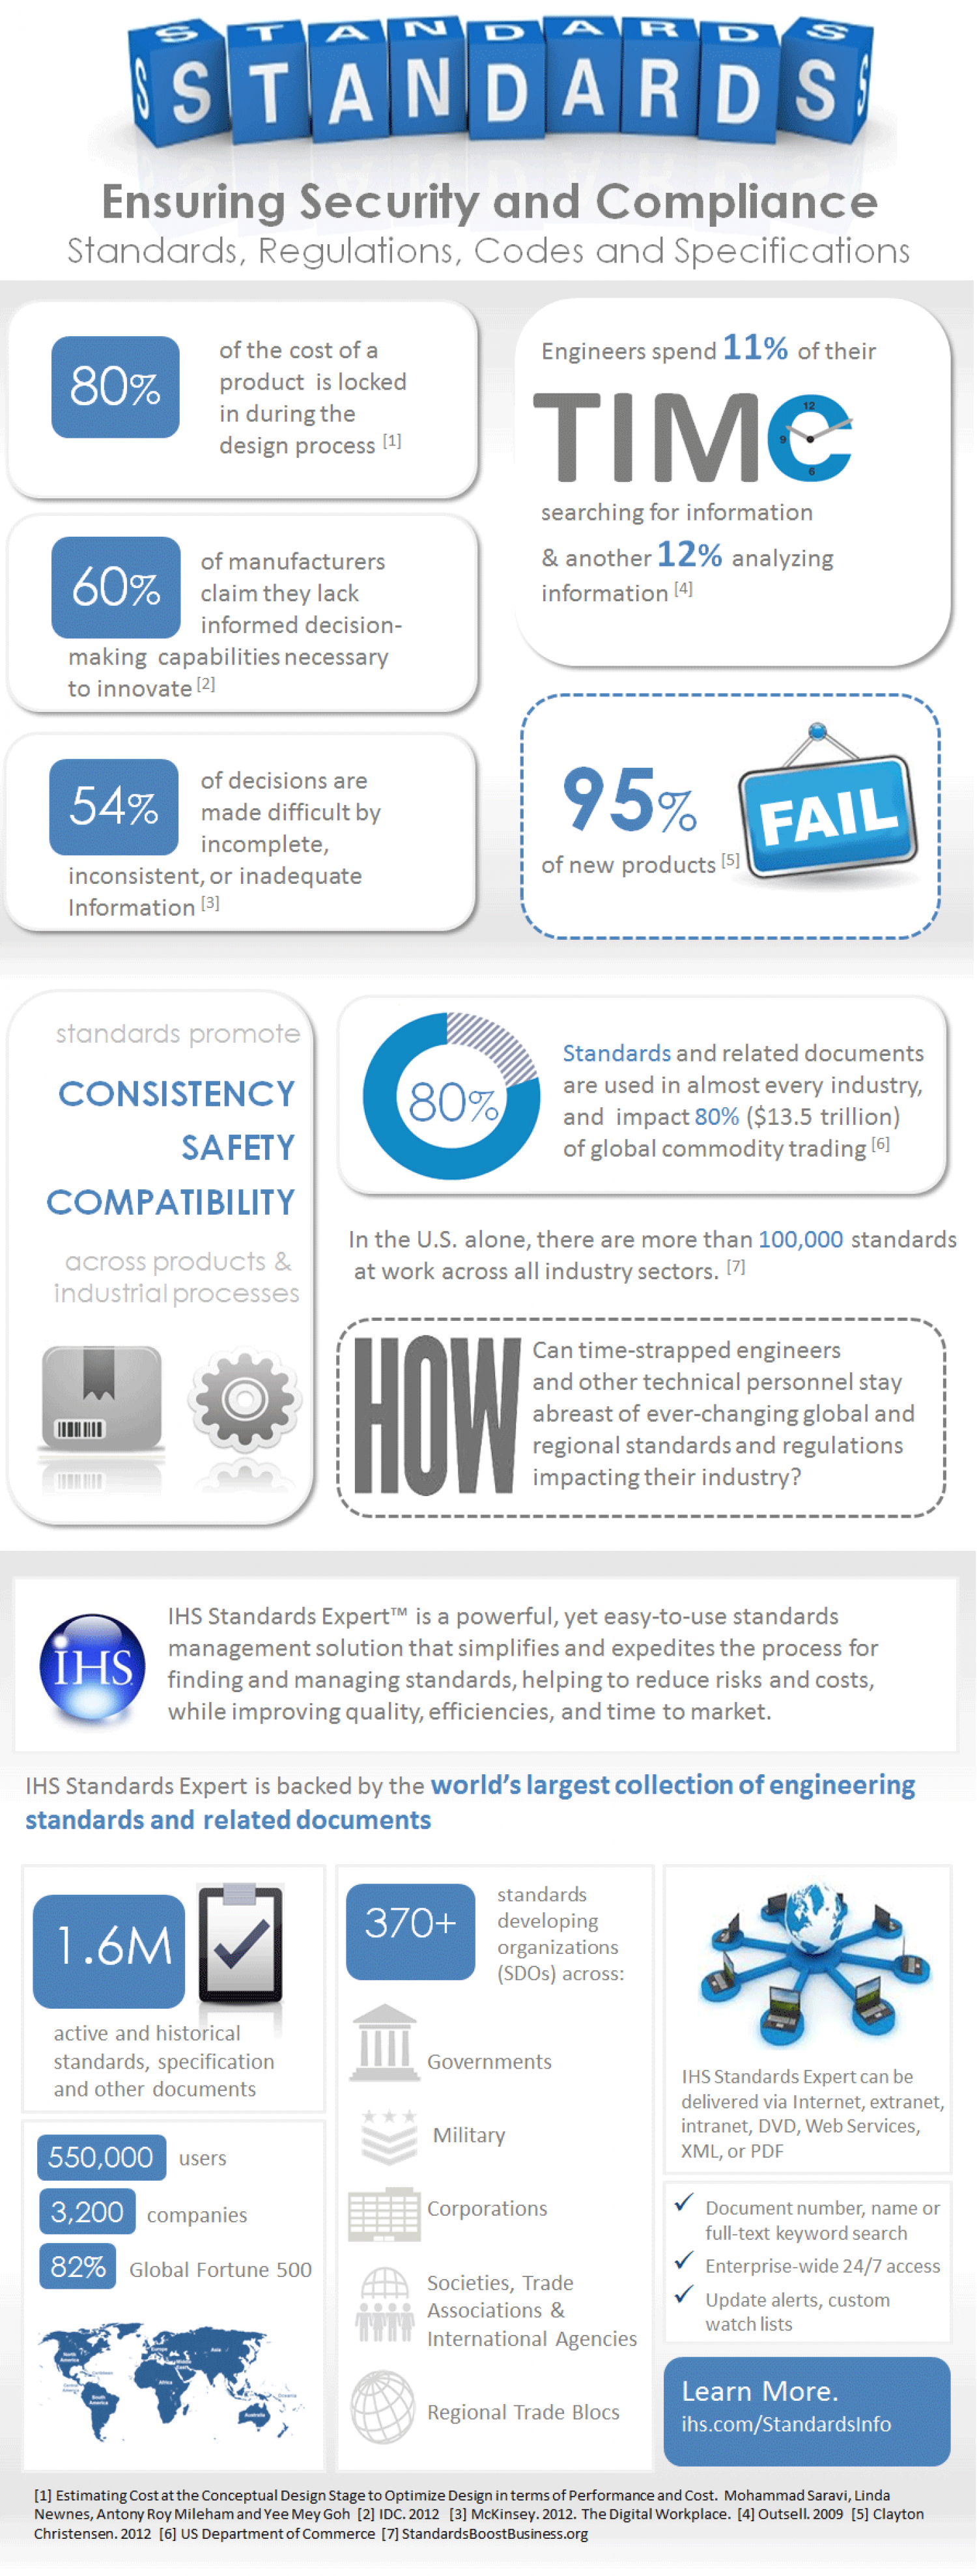 Standards: Ensuring Security and Compliance Infographic